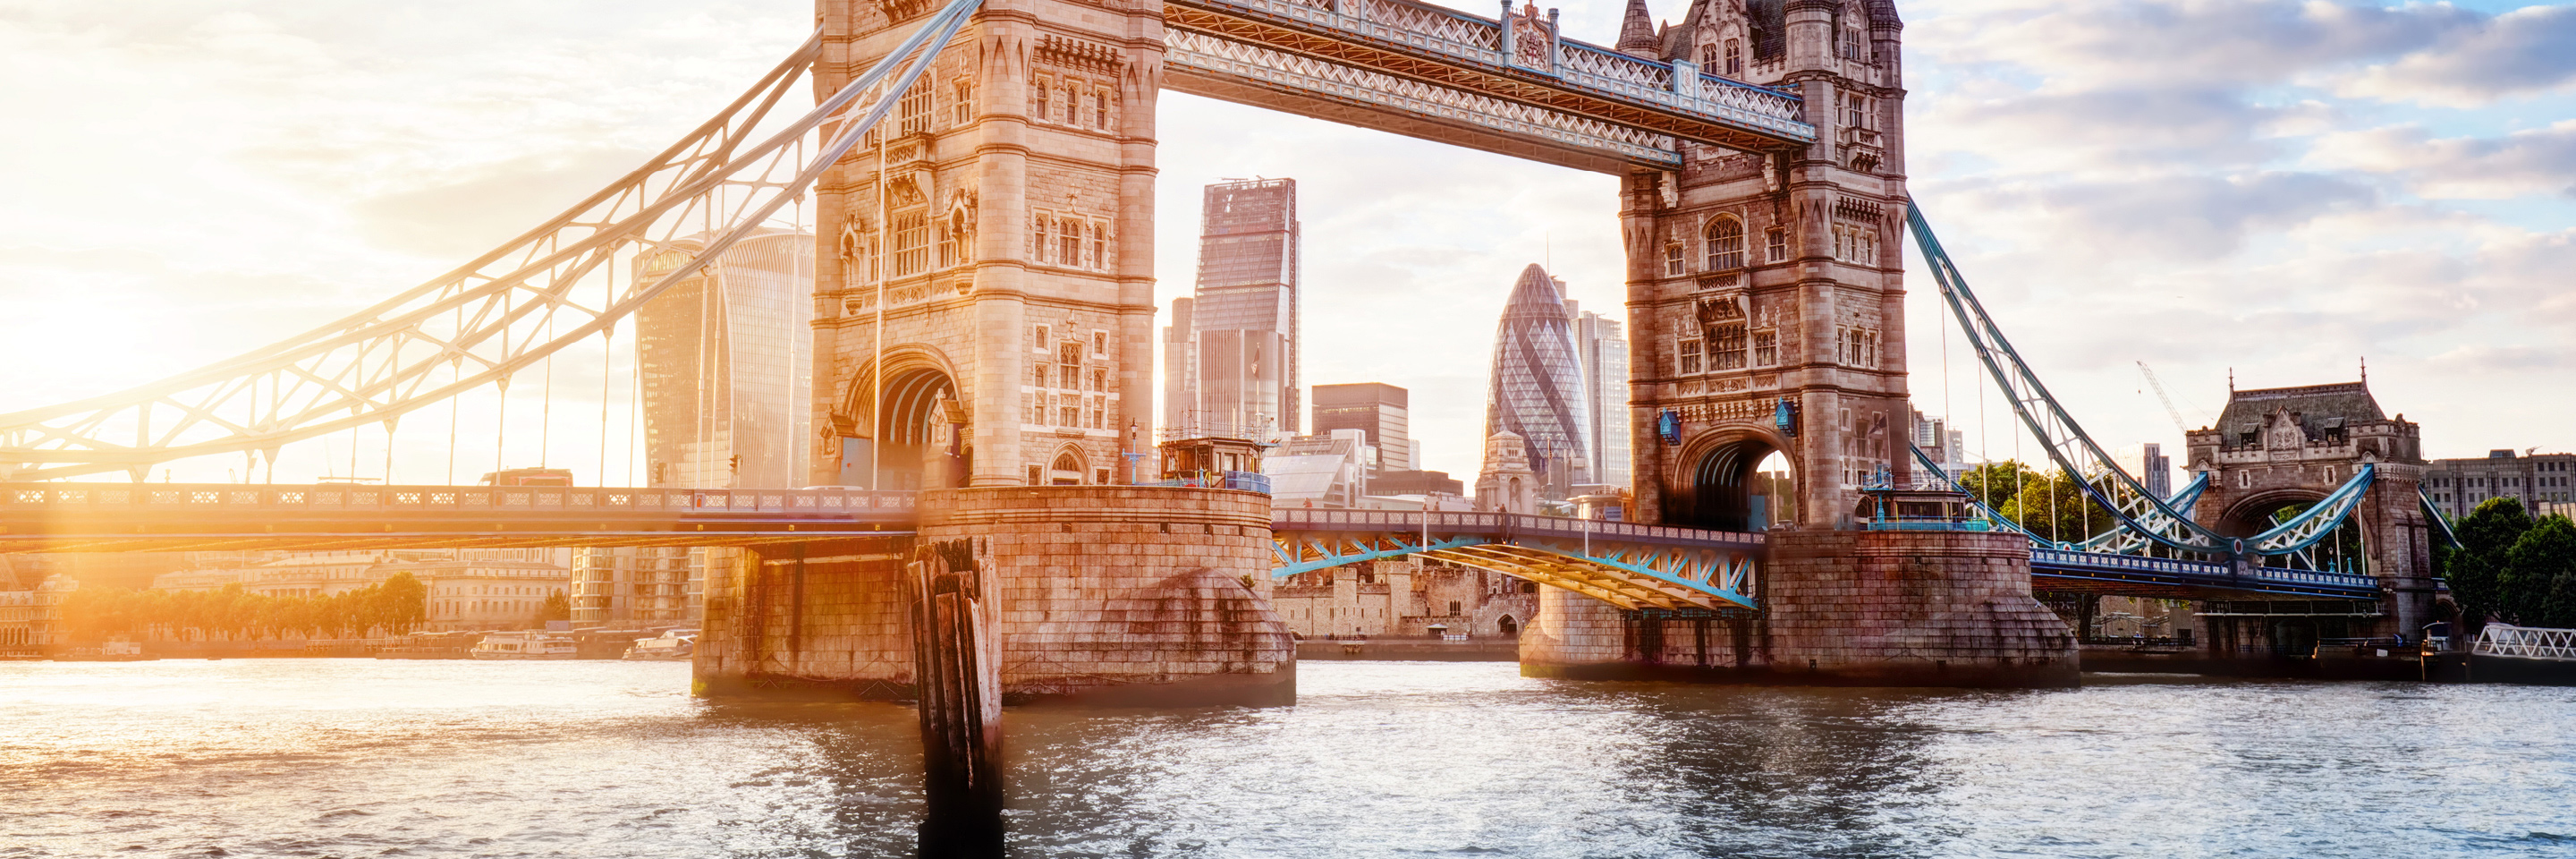 Burgundy & Provence with 2 Nights in Paris & 3 Nights in London for Wine Lovers (Northbound)